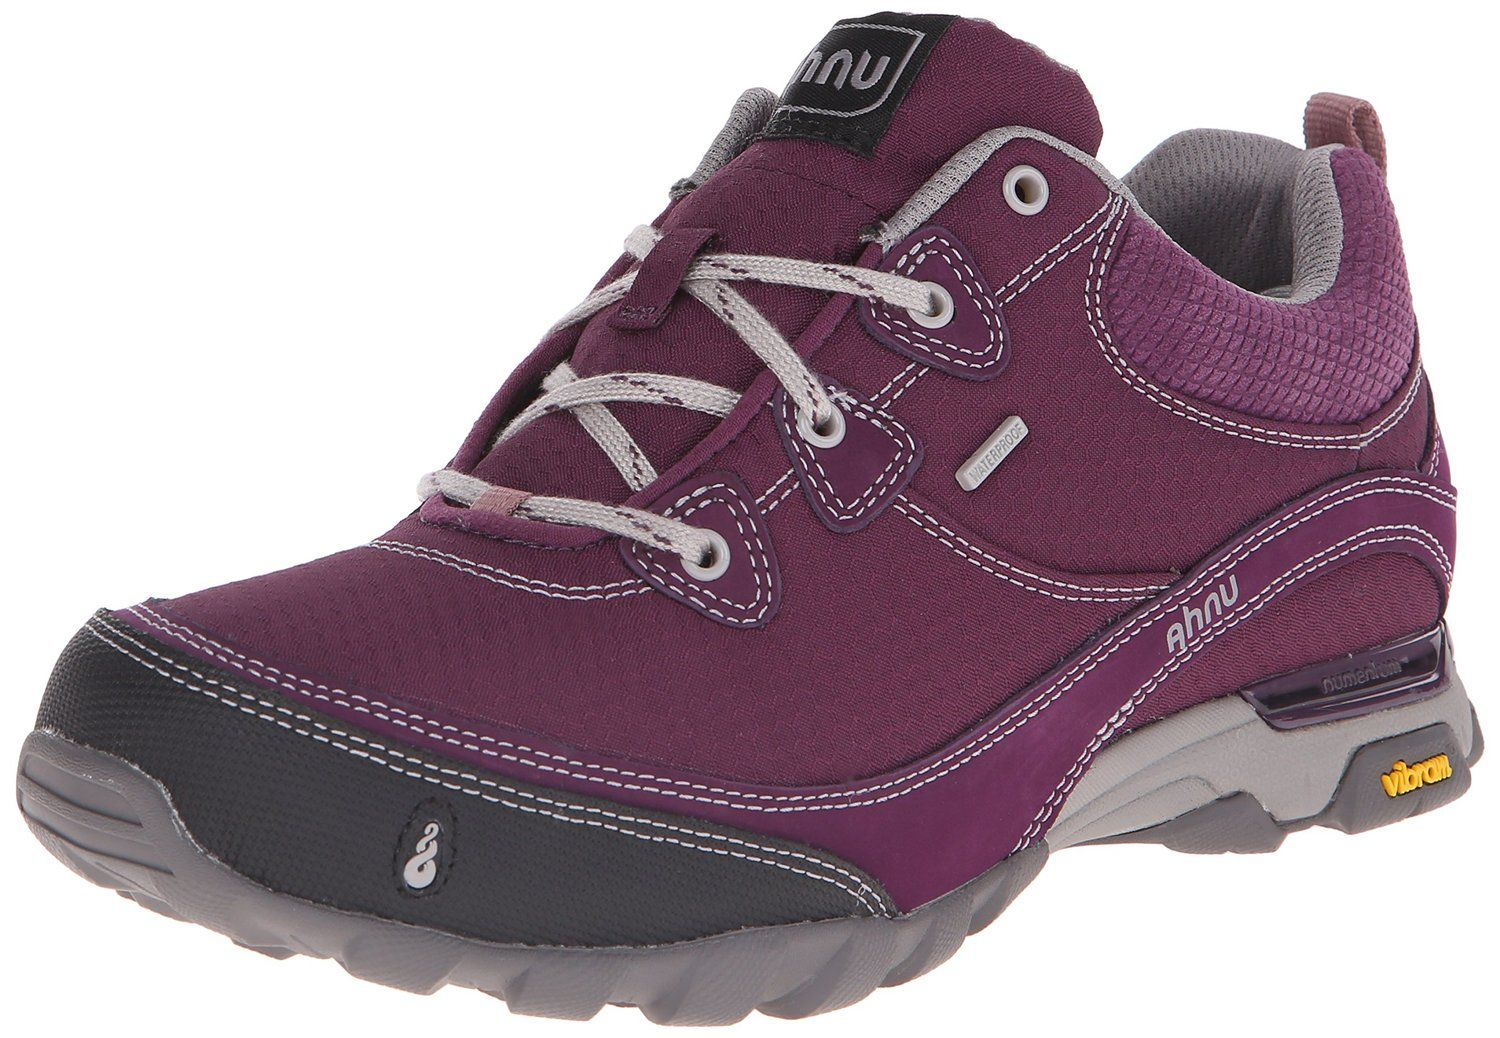 Image result for ahnu purple walking shoes